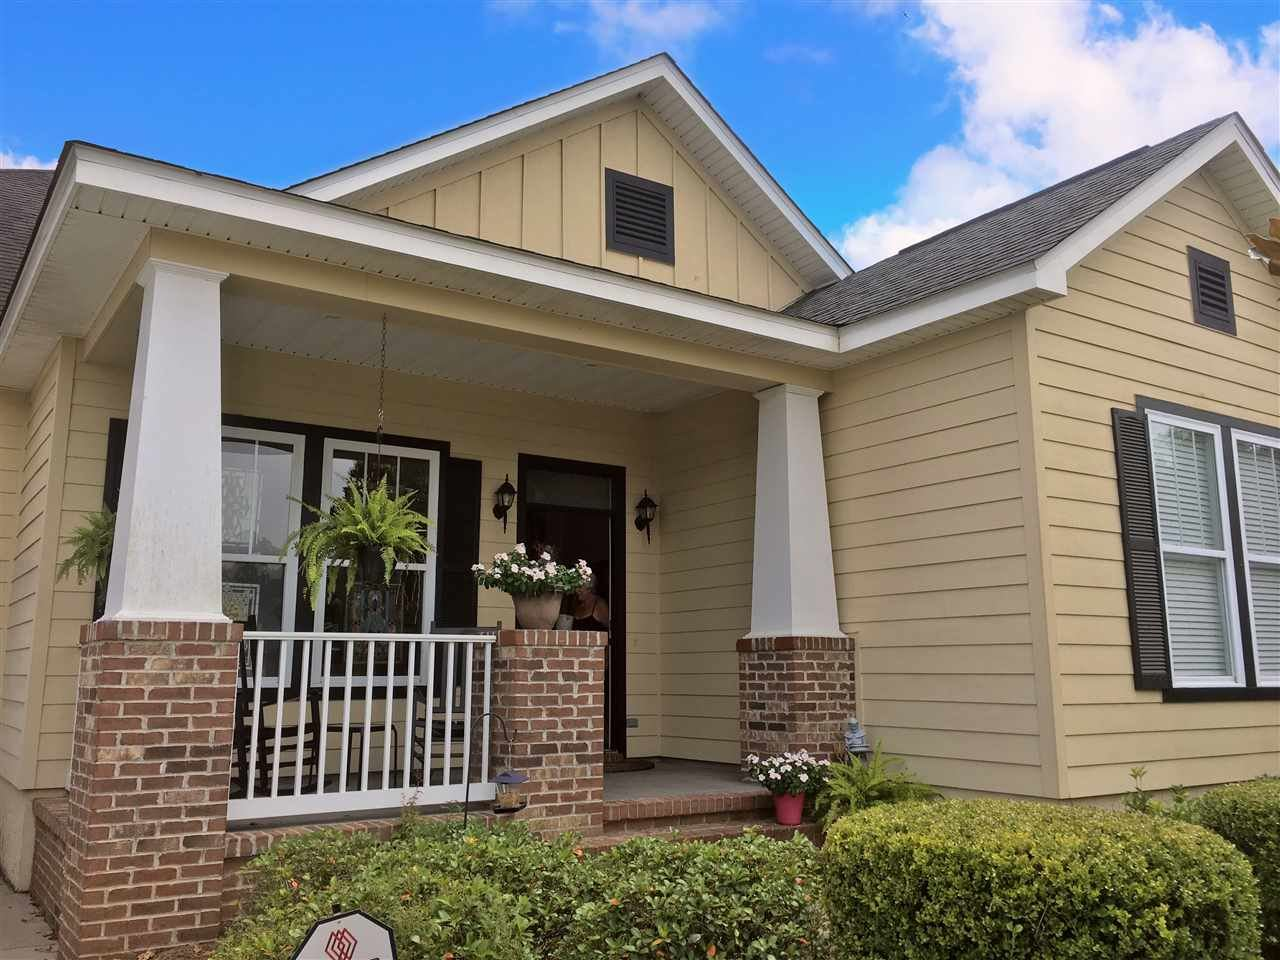 Photo of 2409 Goldenrod Way, TALLAHASSEE, FL 32311 (MLS # 320597)